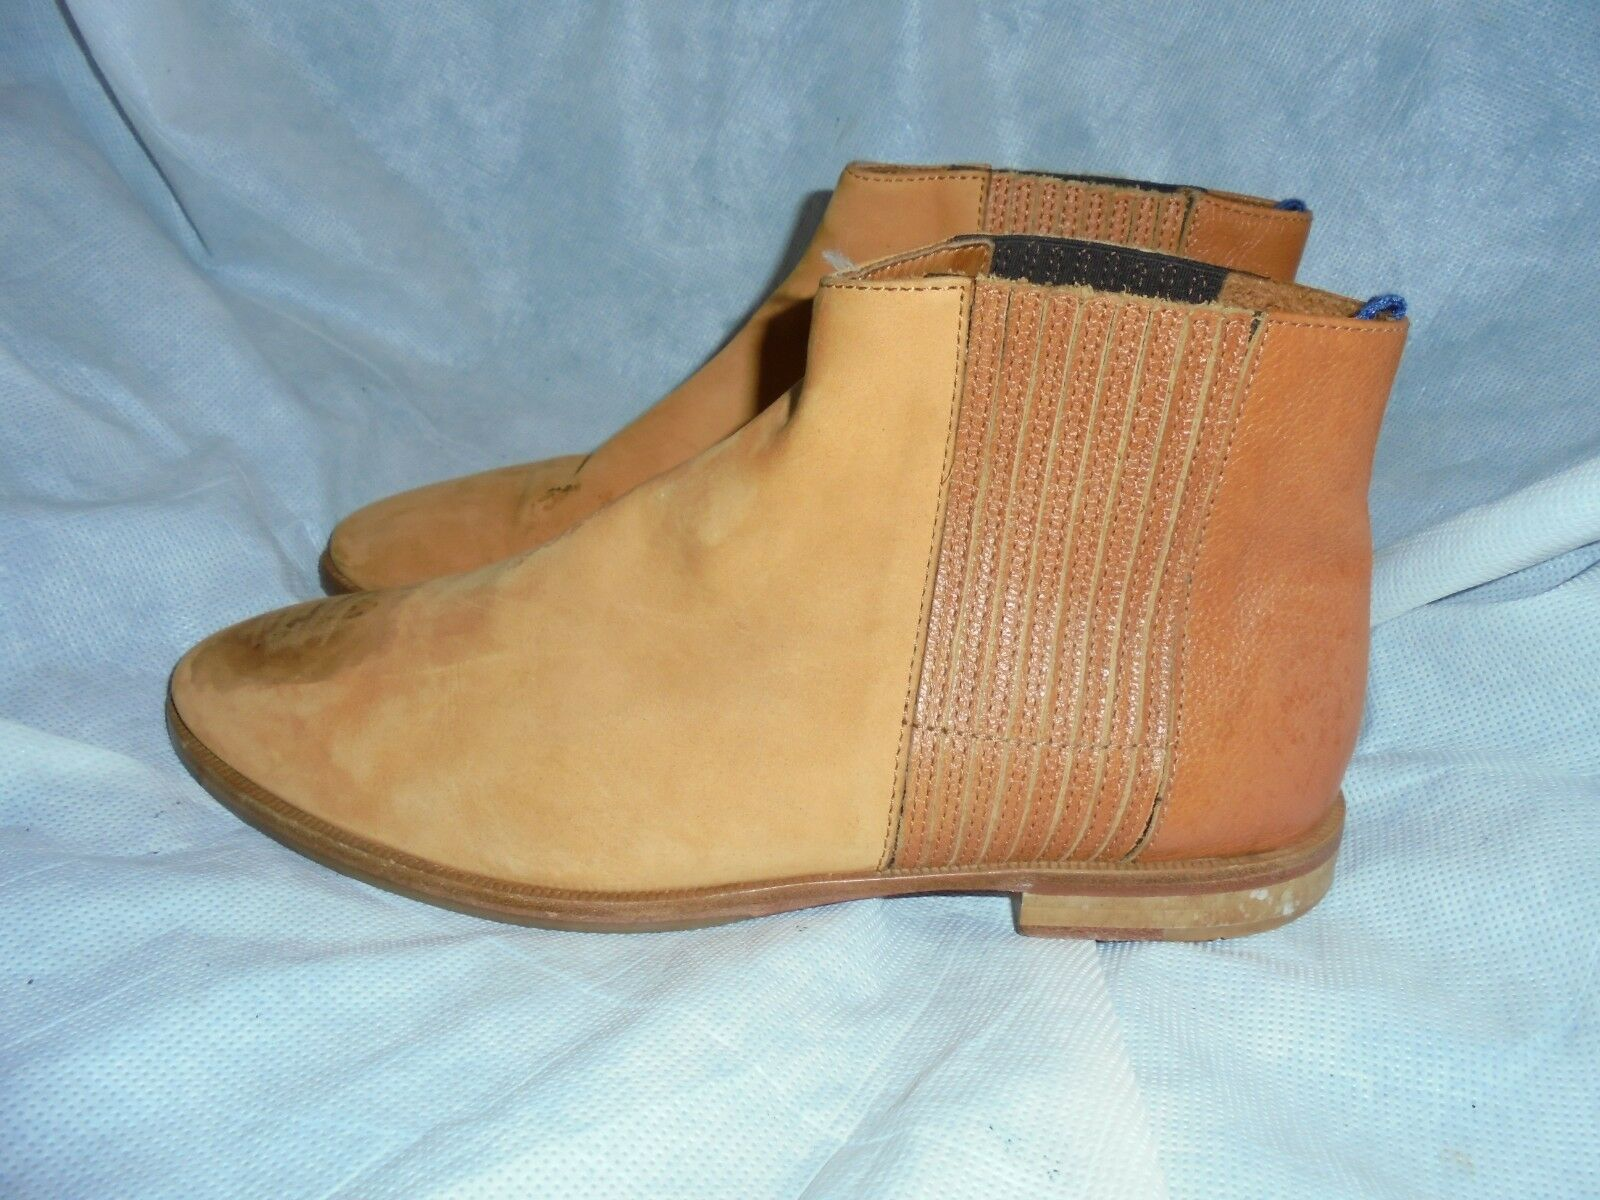 TOAST LADIES TAN LEATHER PULL ON ELASTICATED ANKLE BOOT SIZE US 9